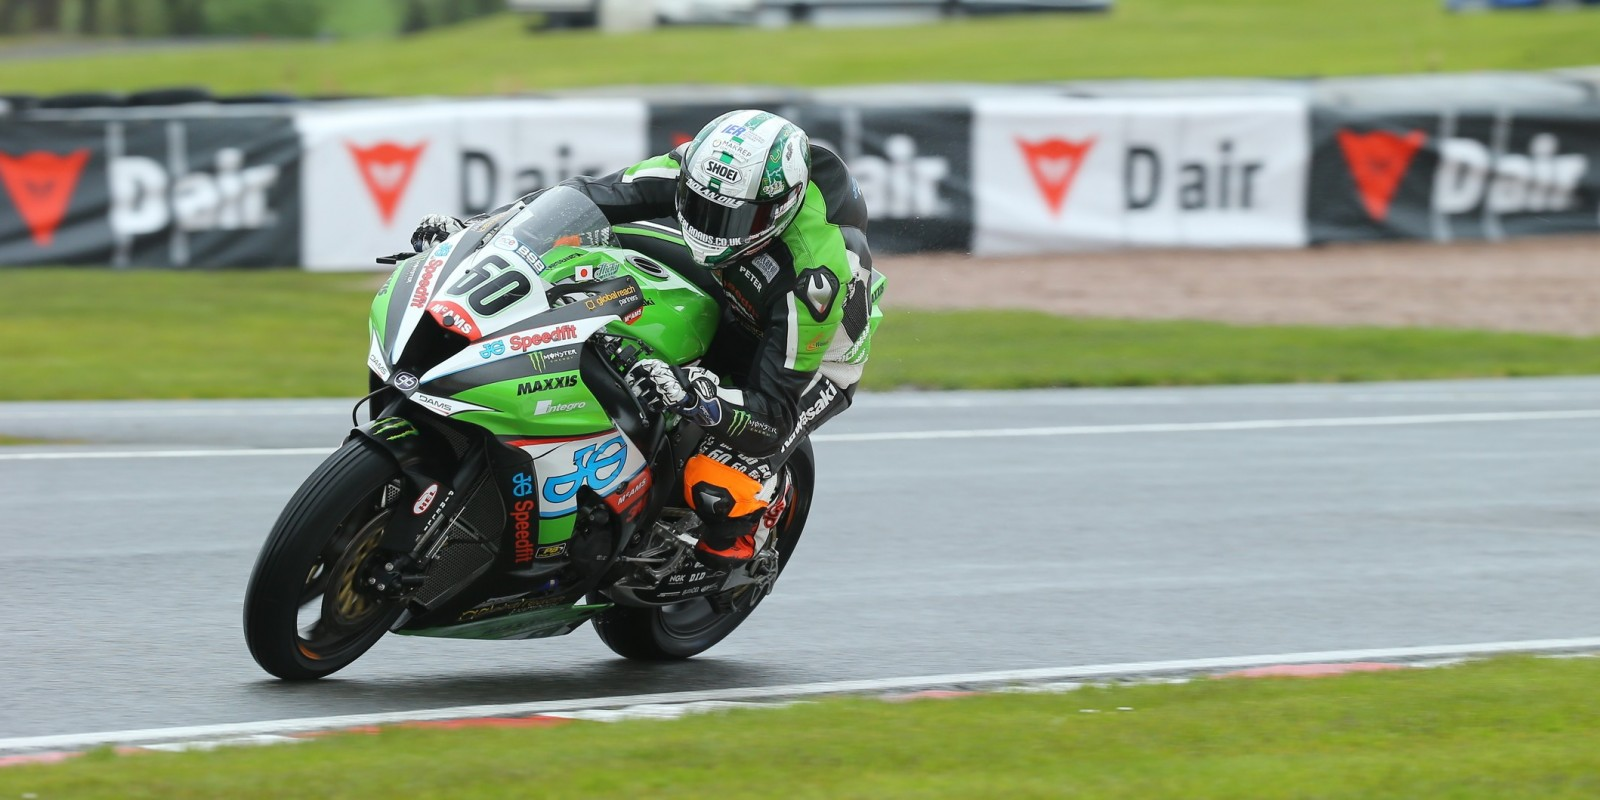 Peter Hickman at round two Oulton Park, Round Two